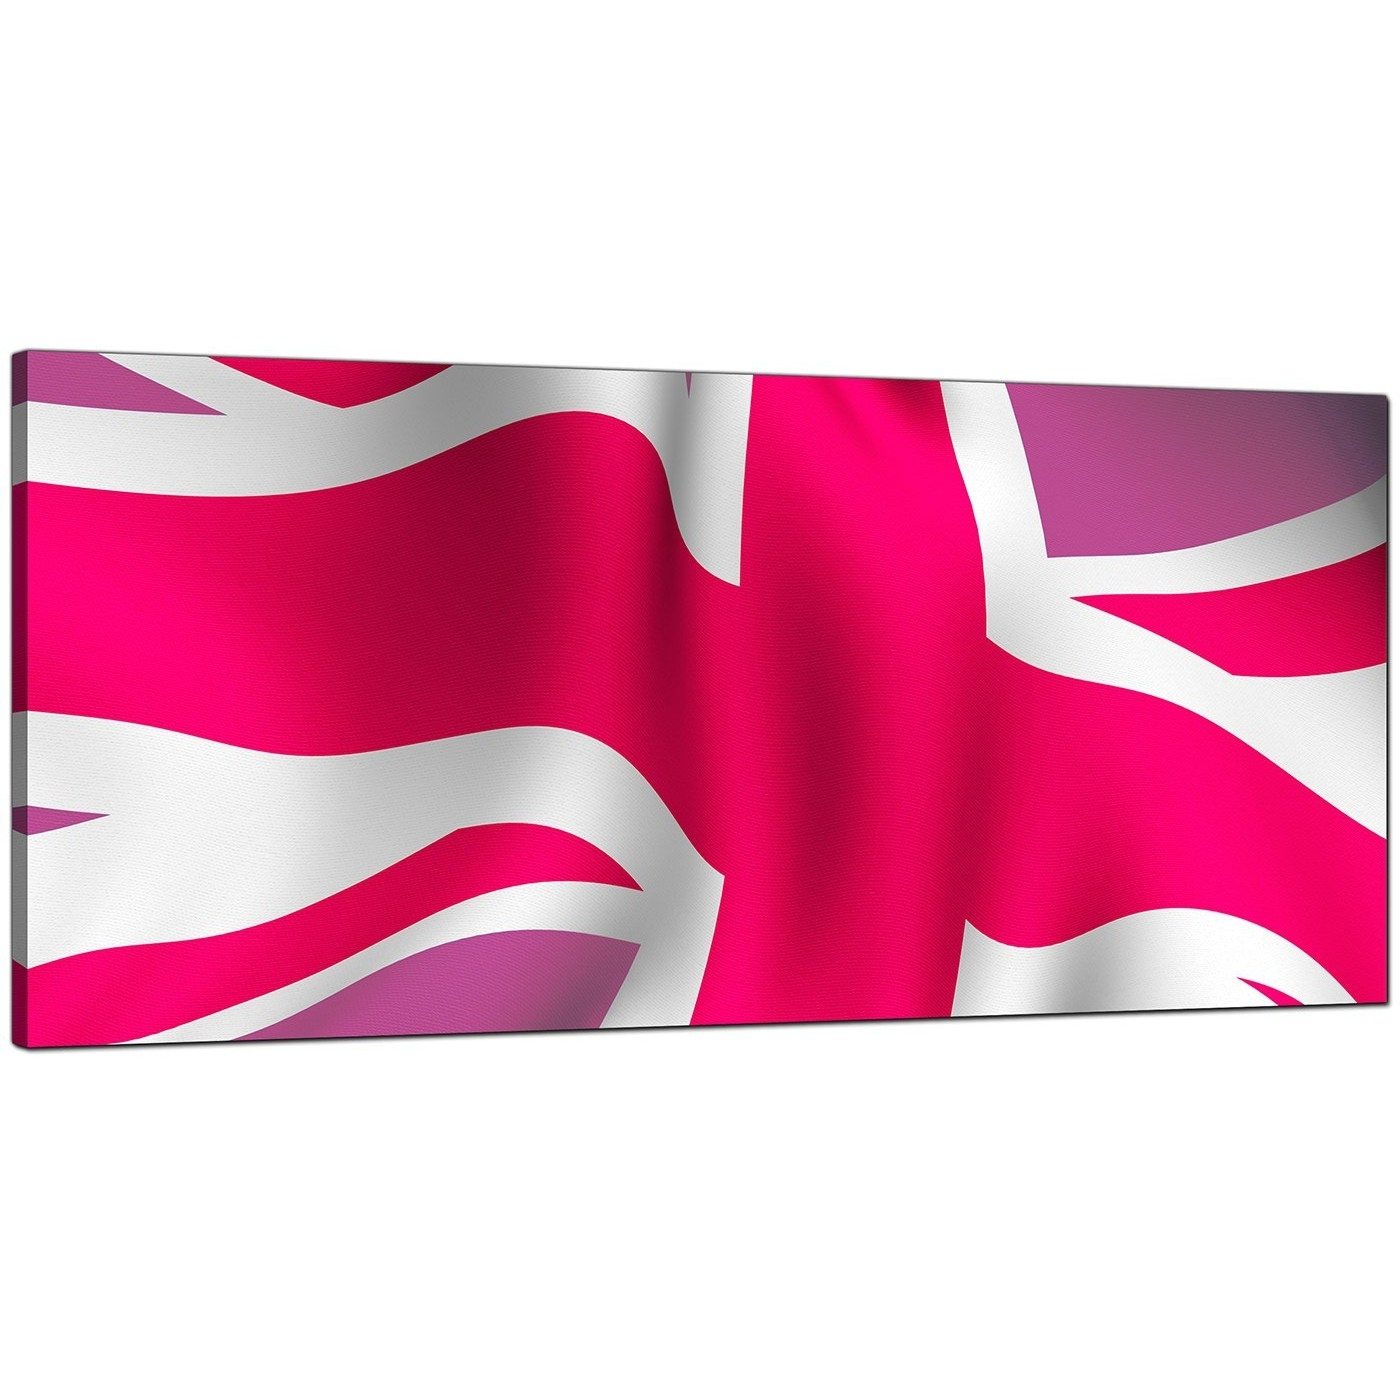 Large Pink Canvas Wall Art Of The Union Jack – 1012 With Regard To Most Popular Union Jack Canvas Wall Art (View 5 of 15)